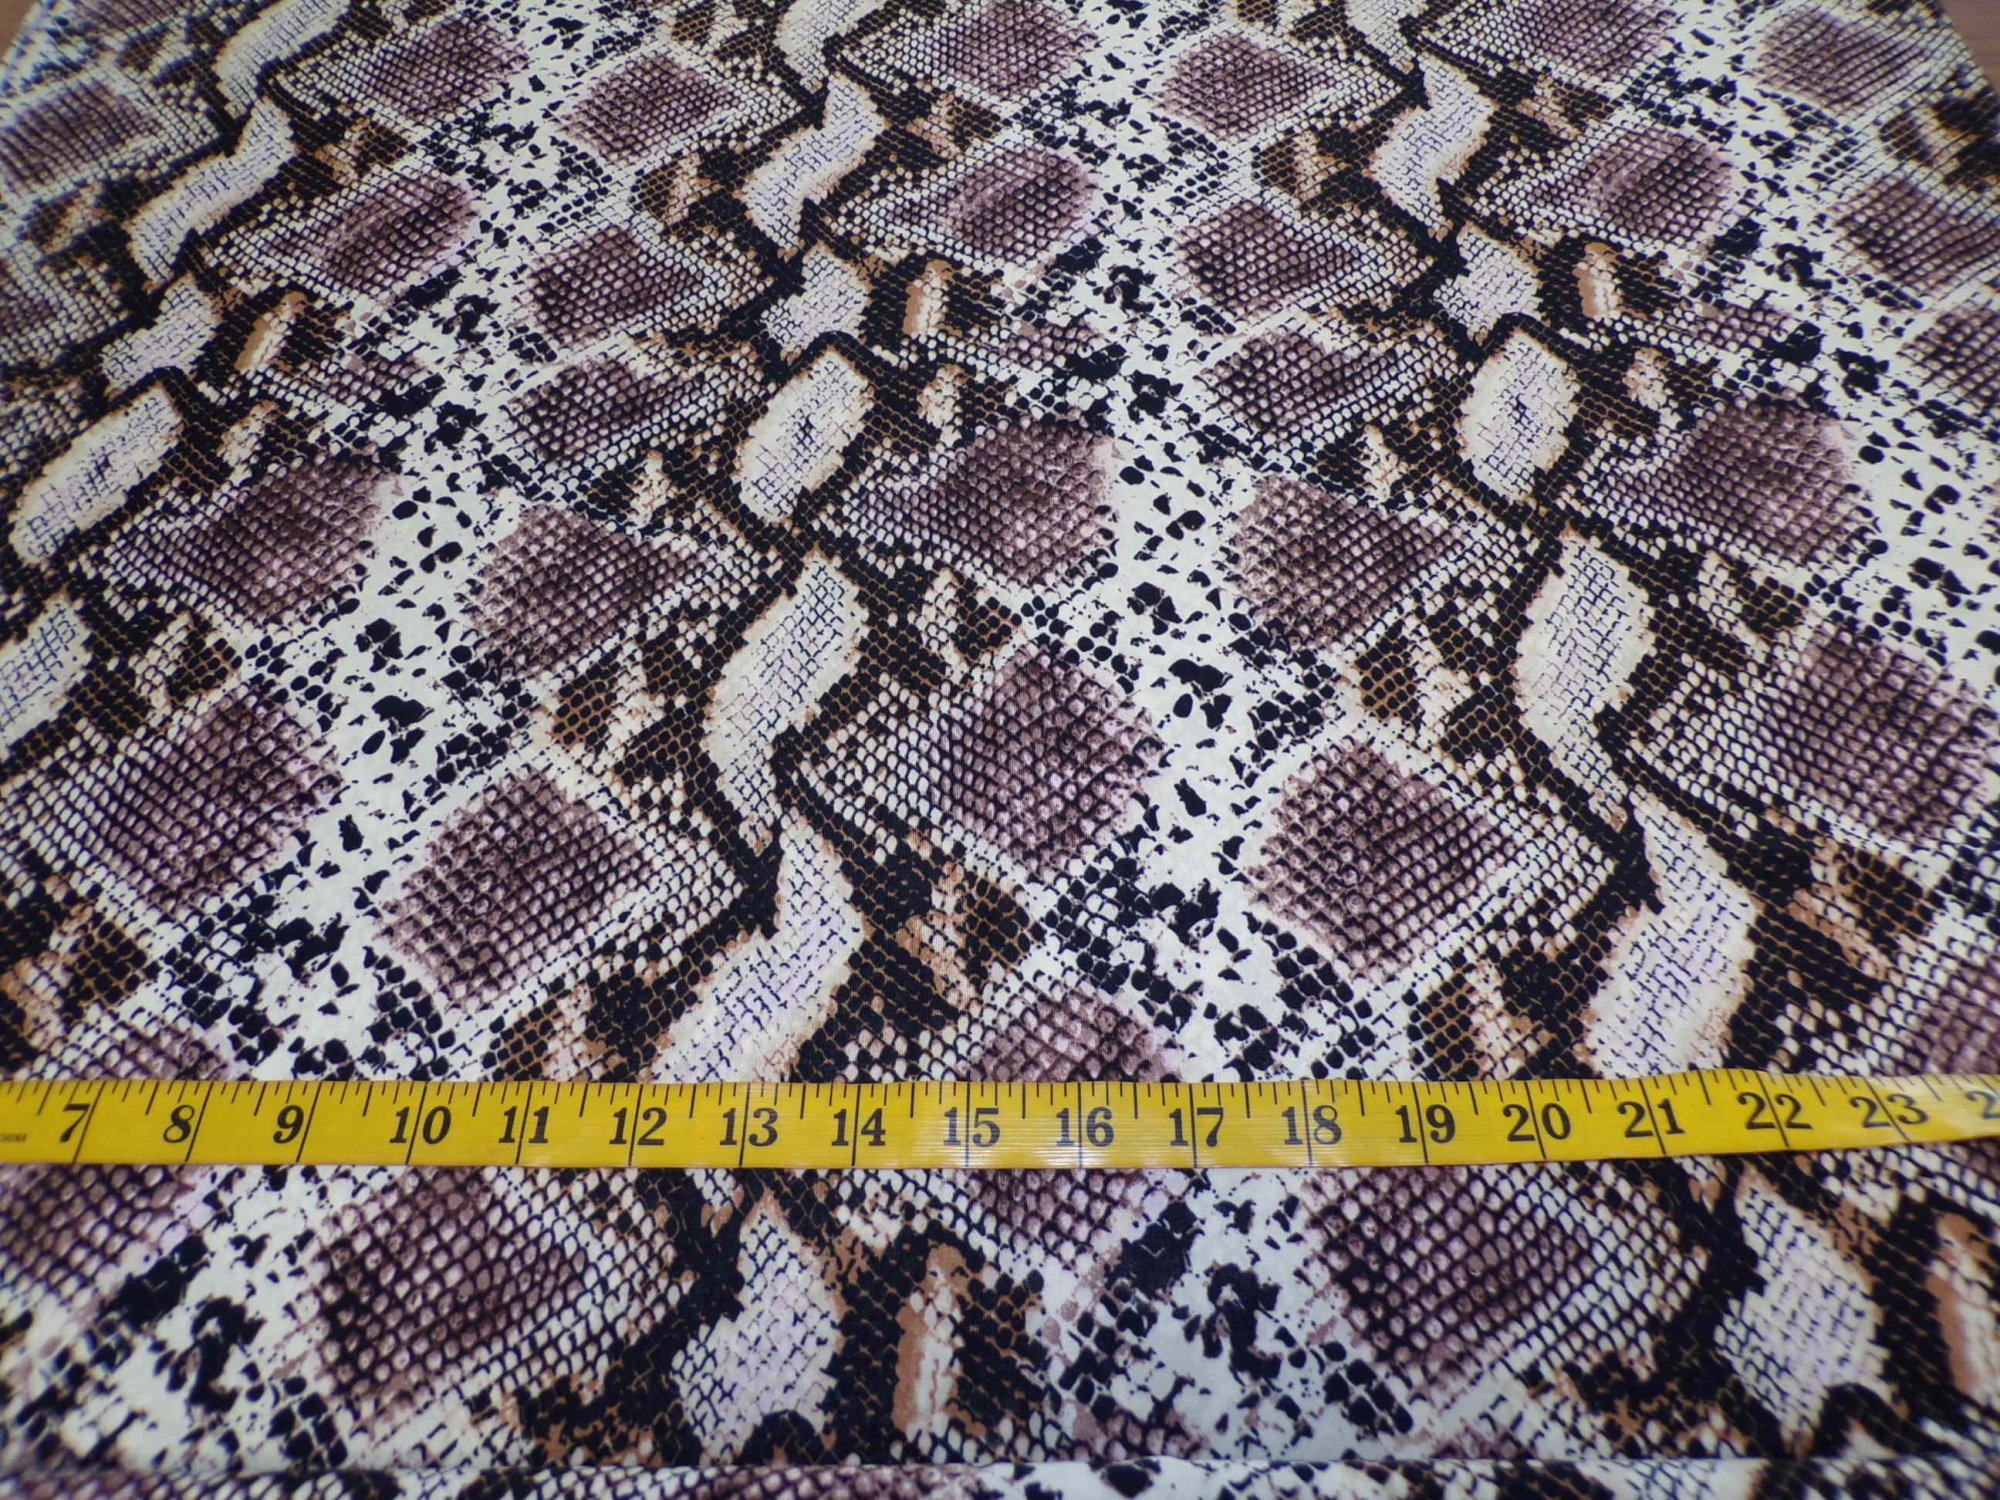 ITY Jersey – Brown and Cream Snakeskin Print